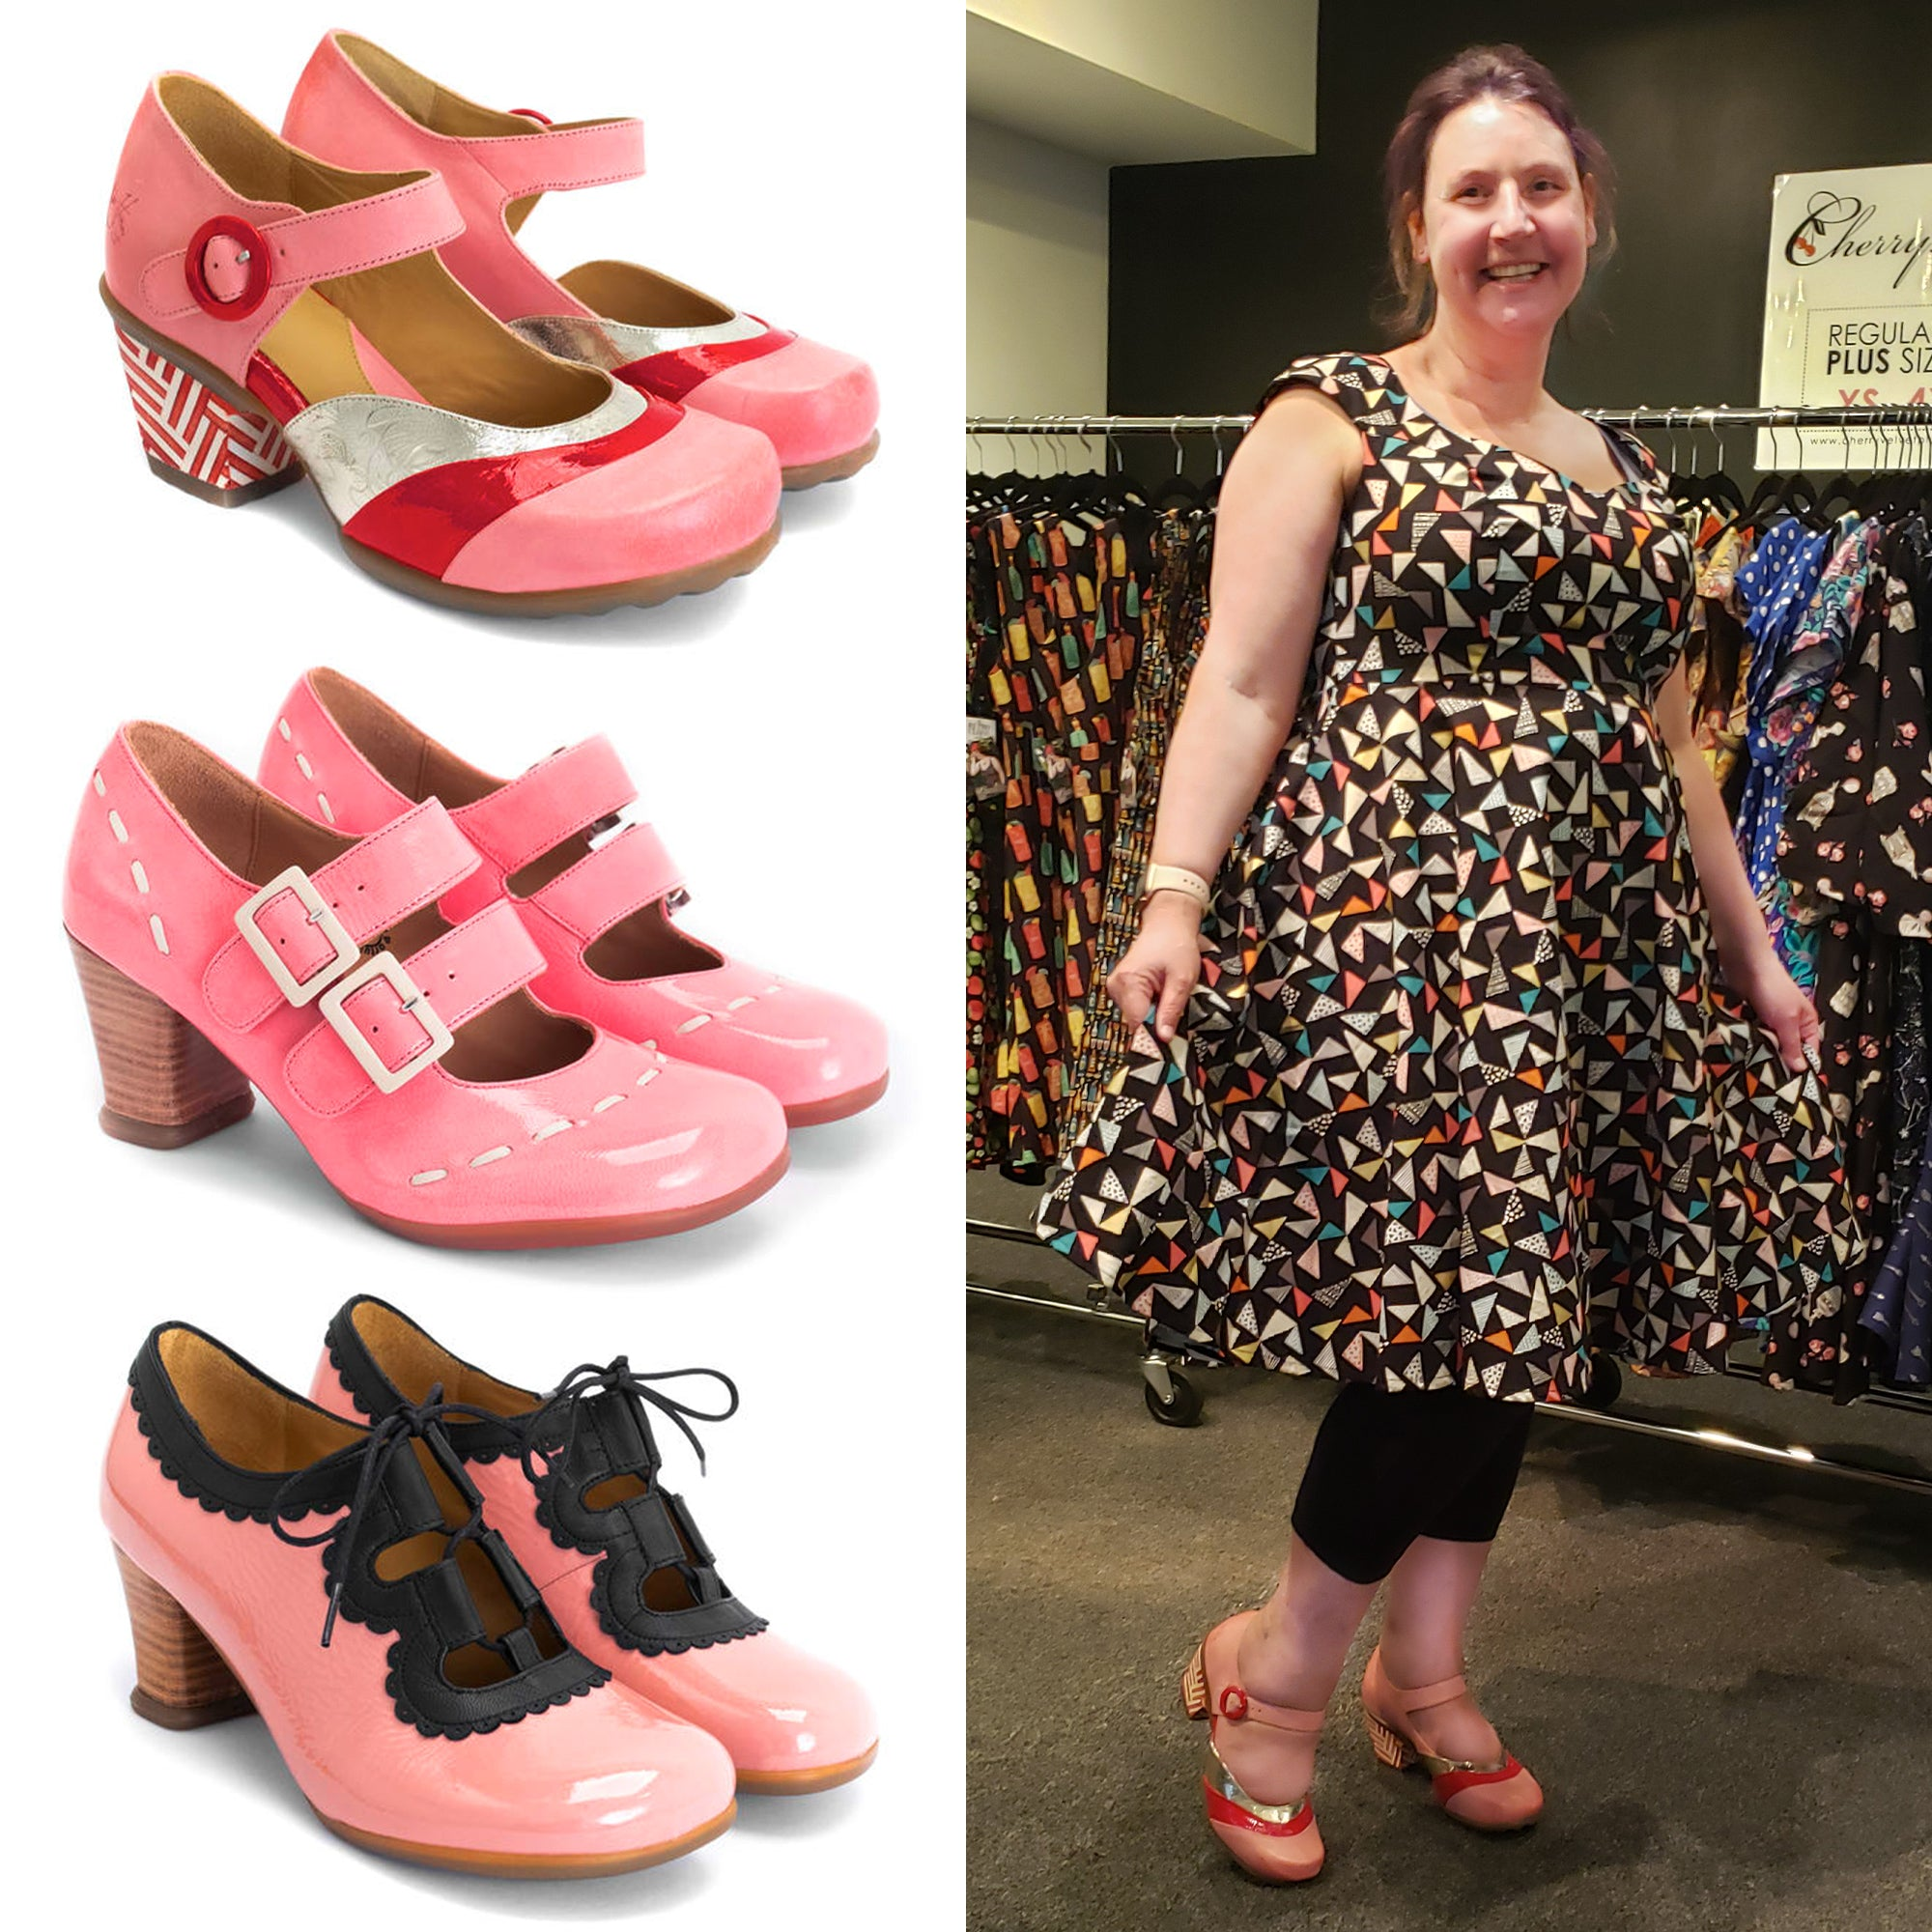 John Fluevog Shoes in Pink with Cherry Velvet Broke dress in Love Triangle